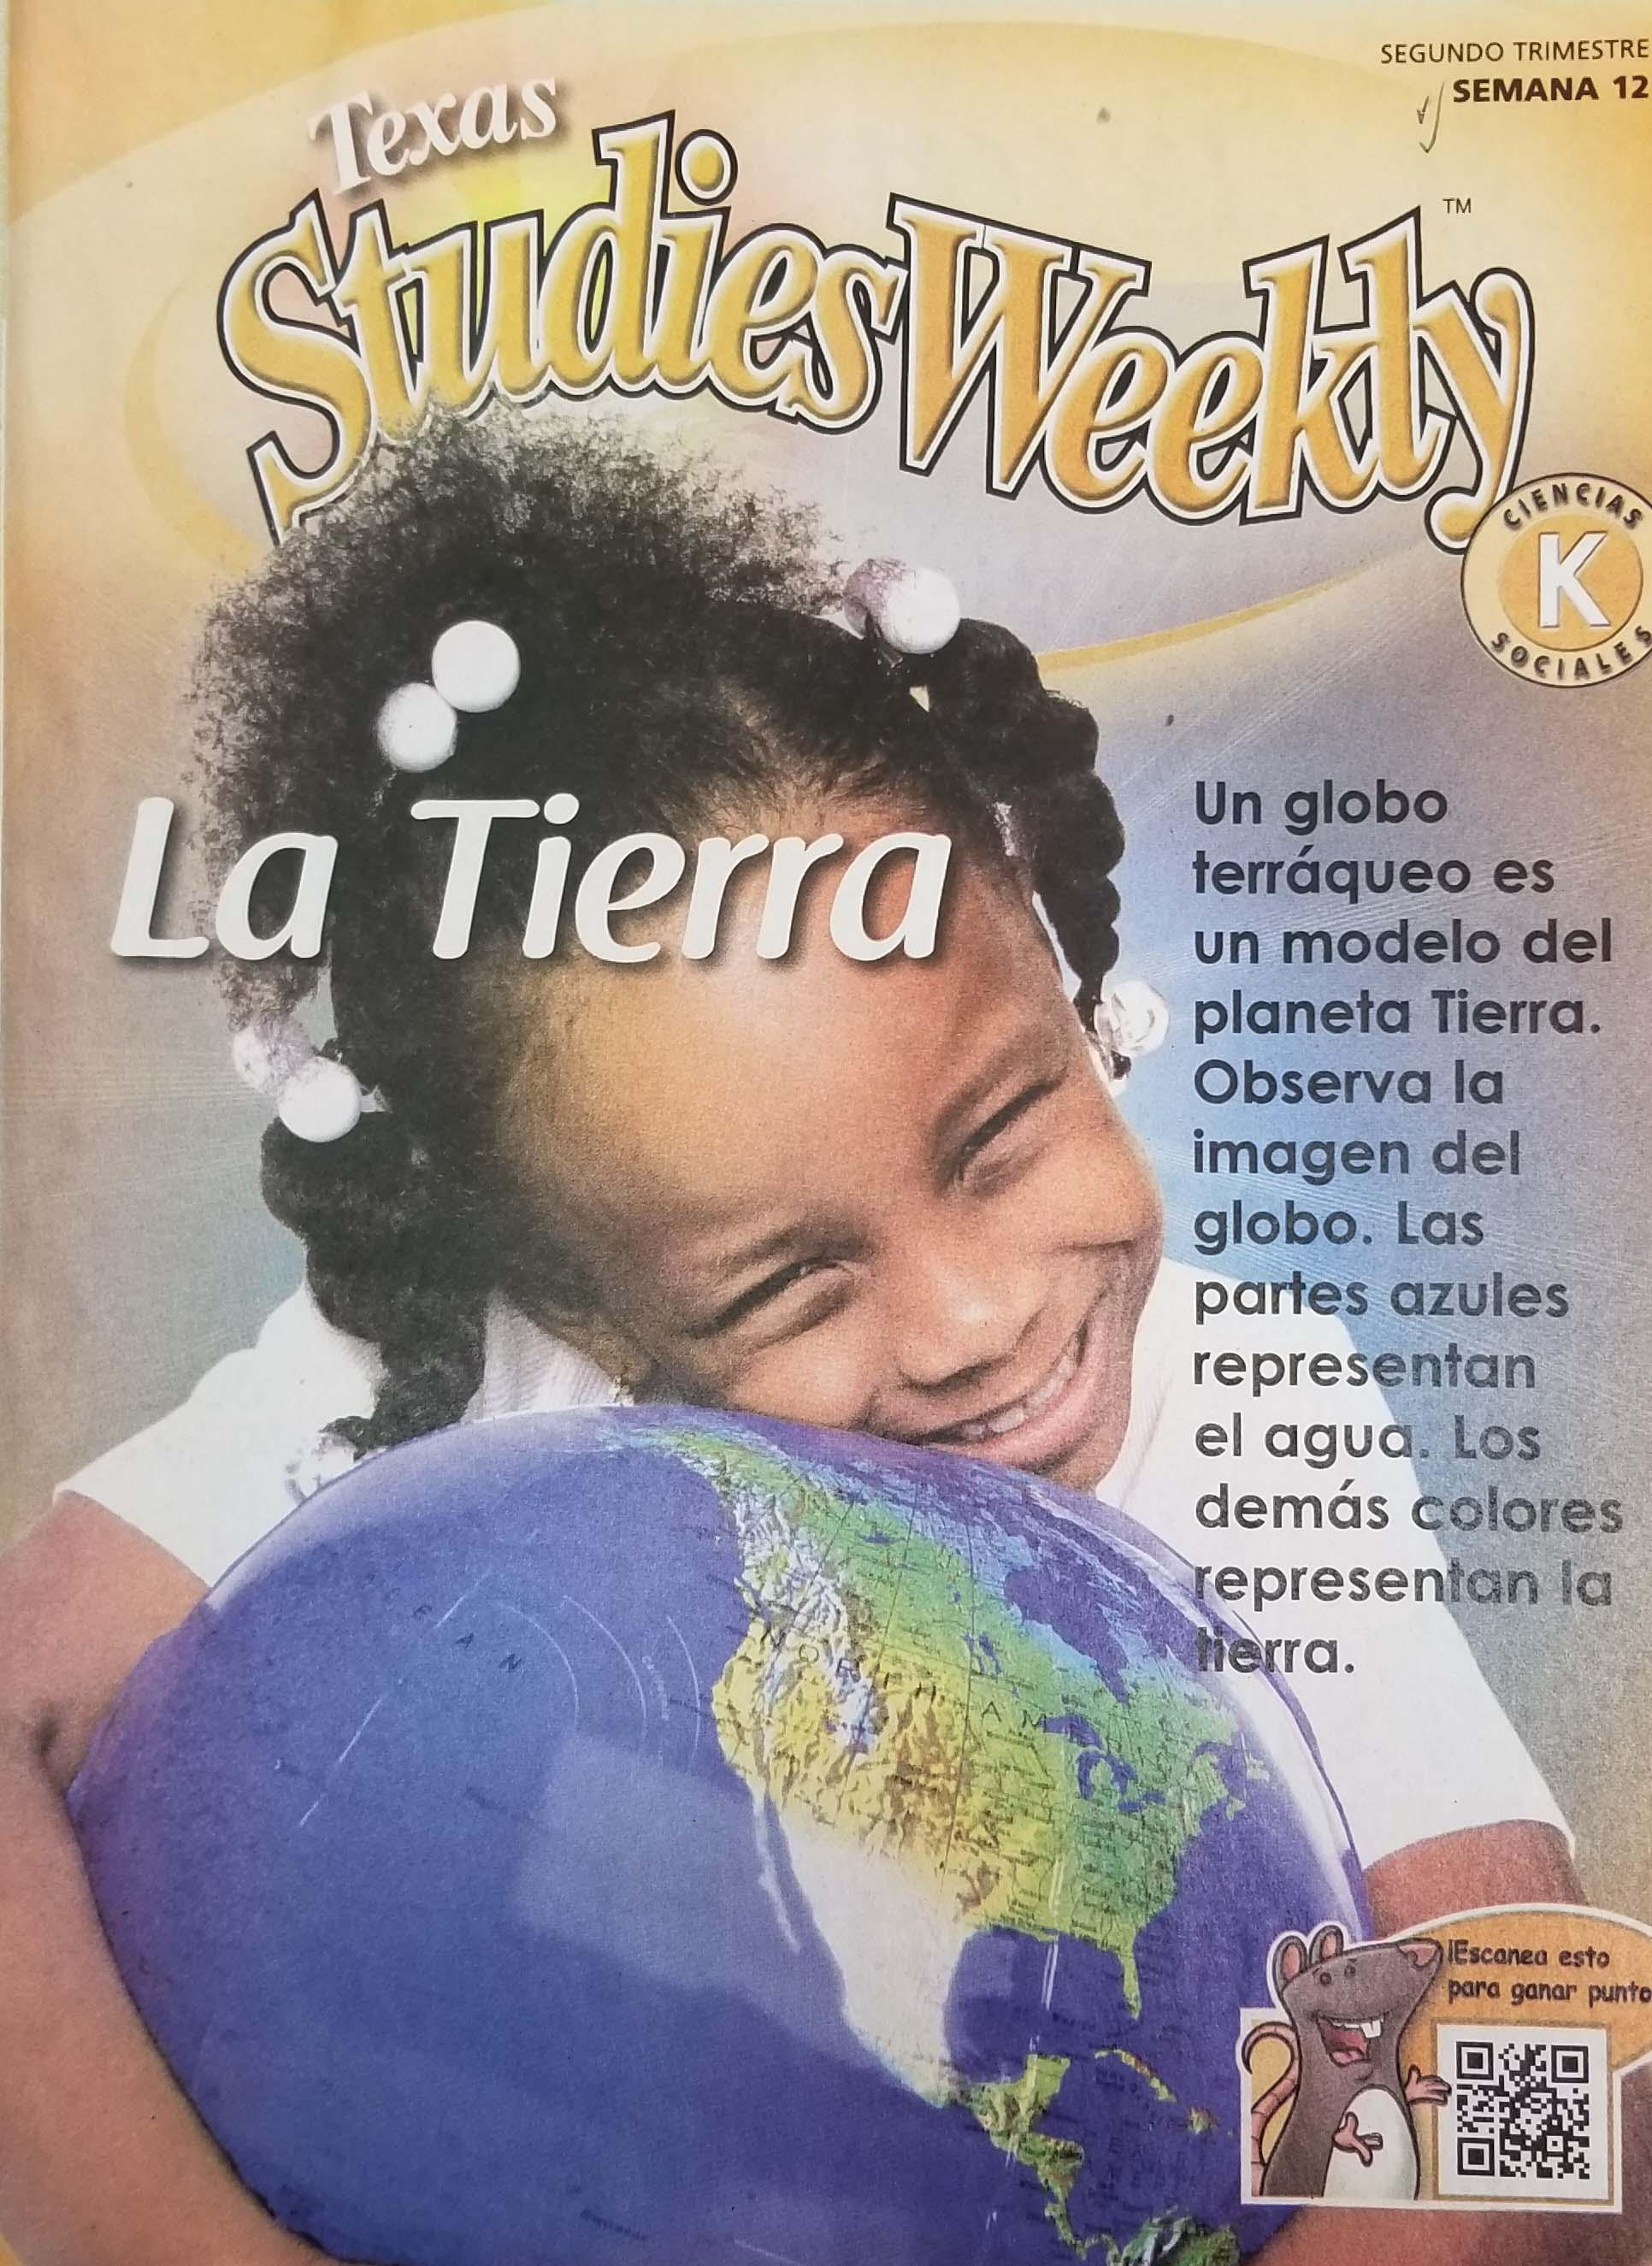 Spanish-language Weekly Reader cover showing kindergarten girl smiling her biggest smile while hugging an inflatable globe of the world; the topic of this Weekly Reader is The Earth.